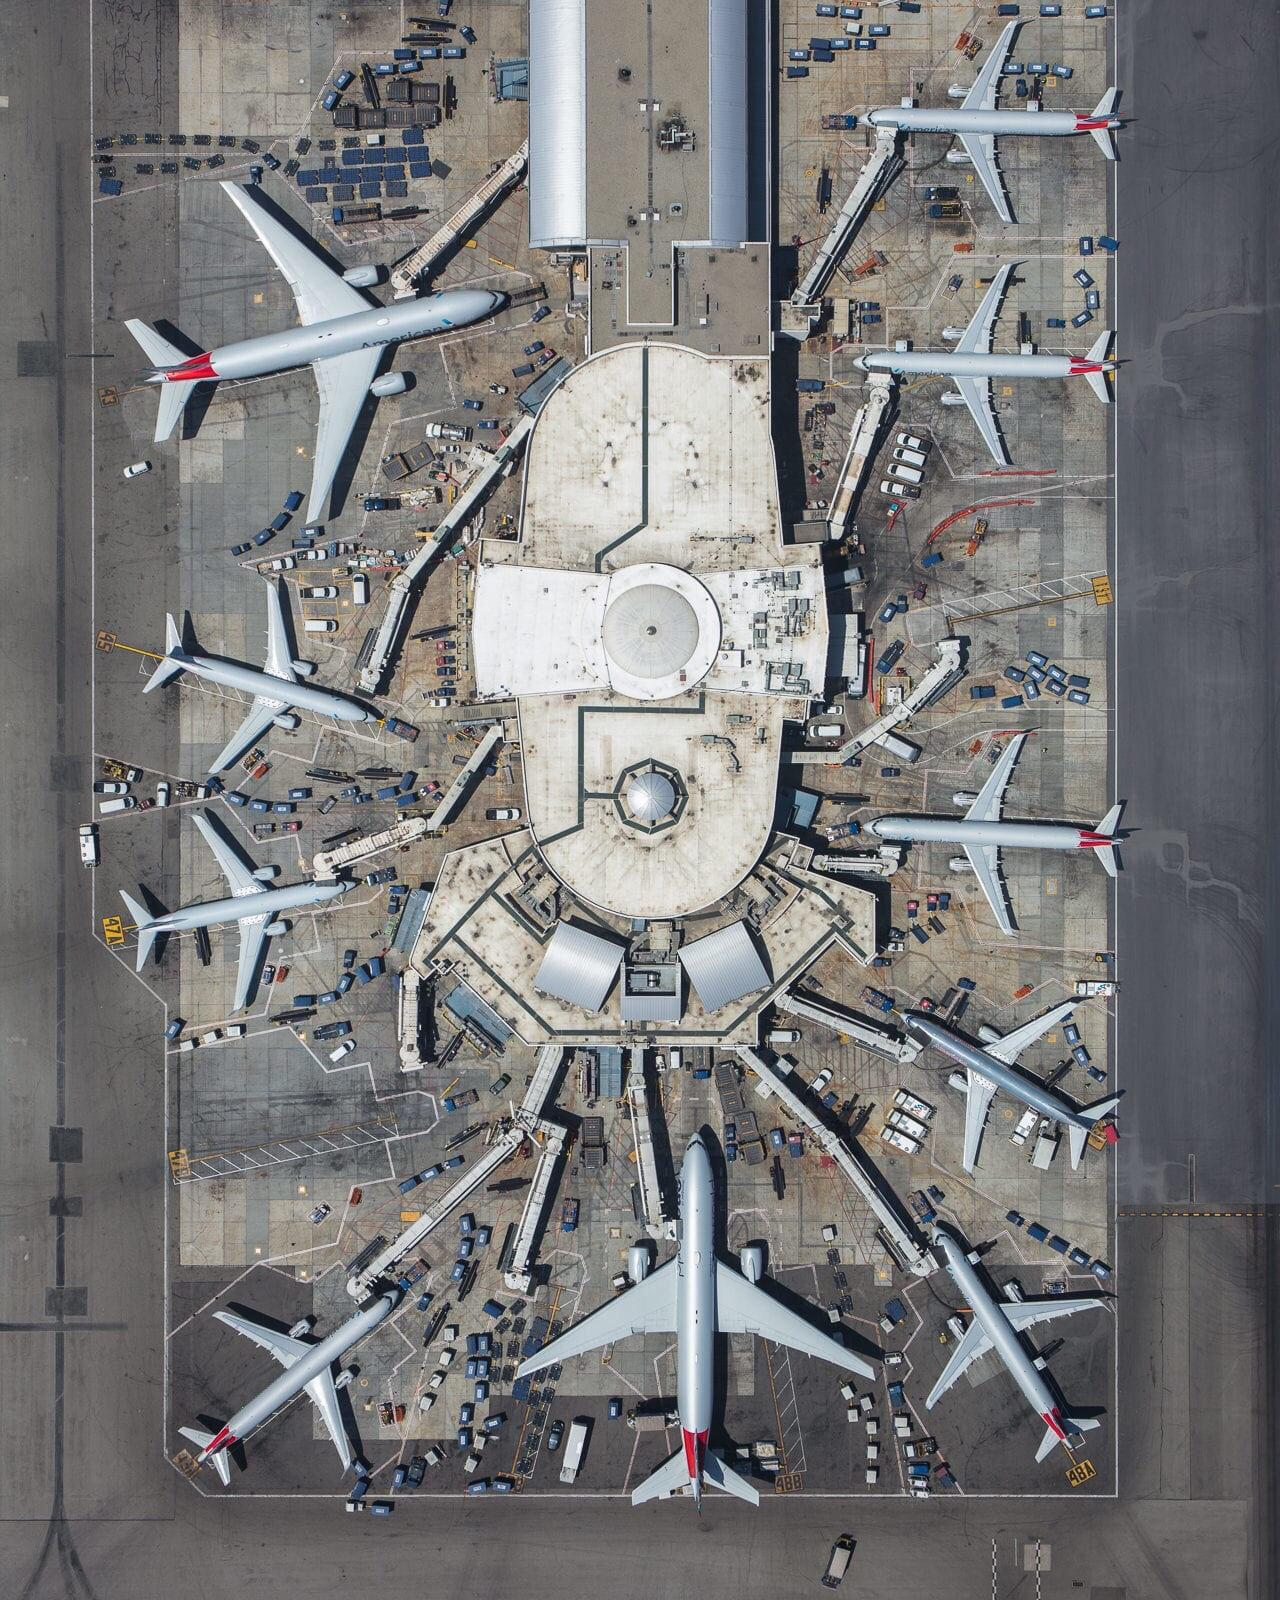 An Overhead View of Terminal 4 at LAX